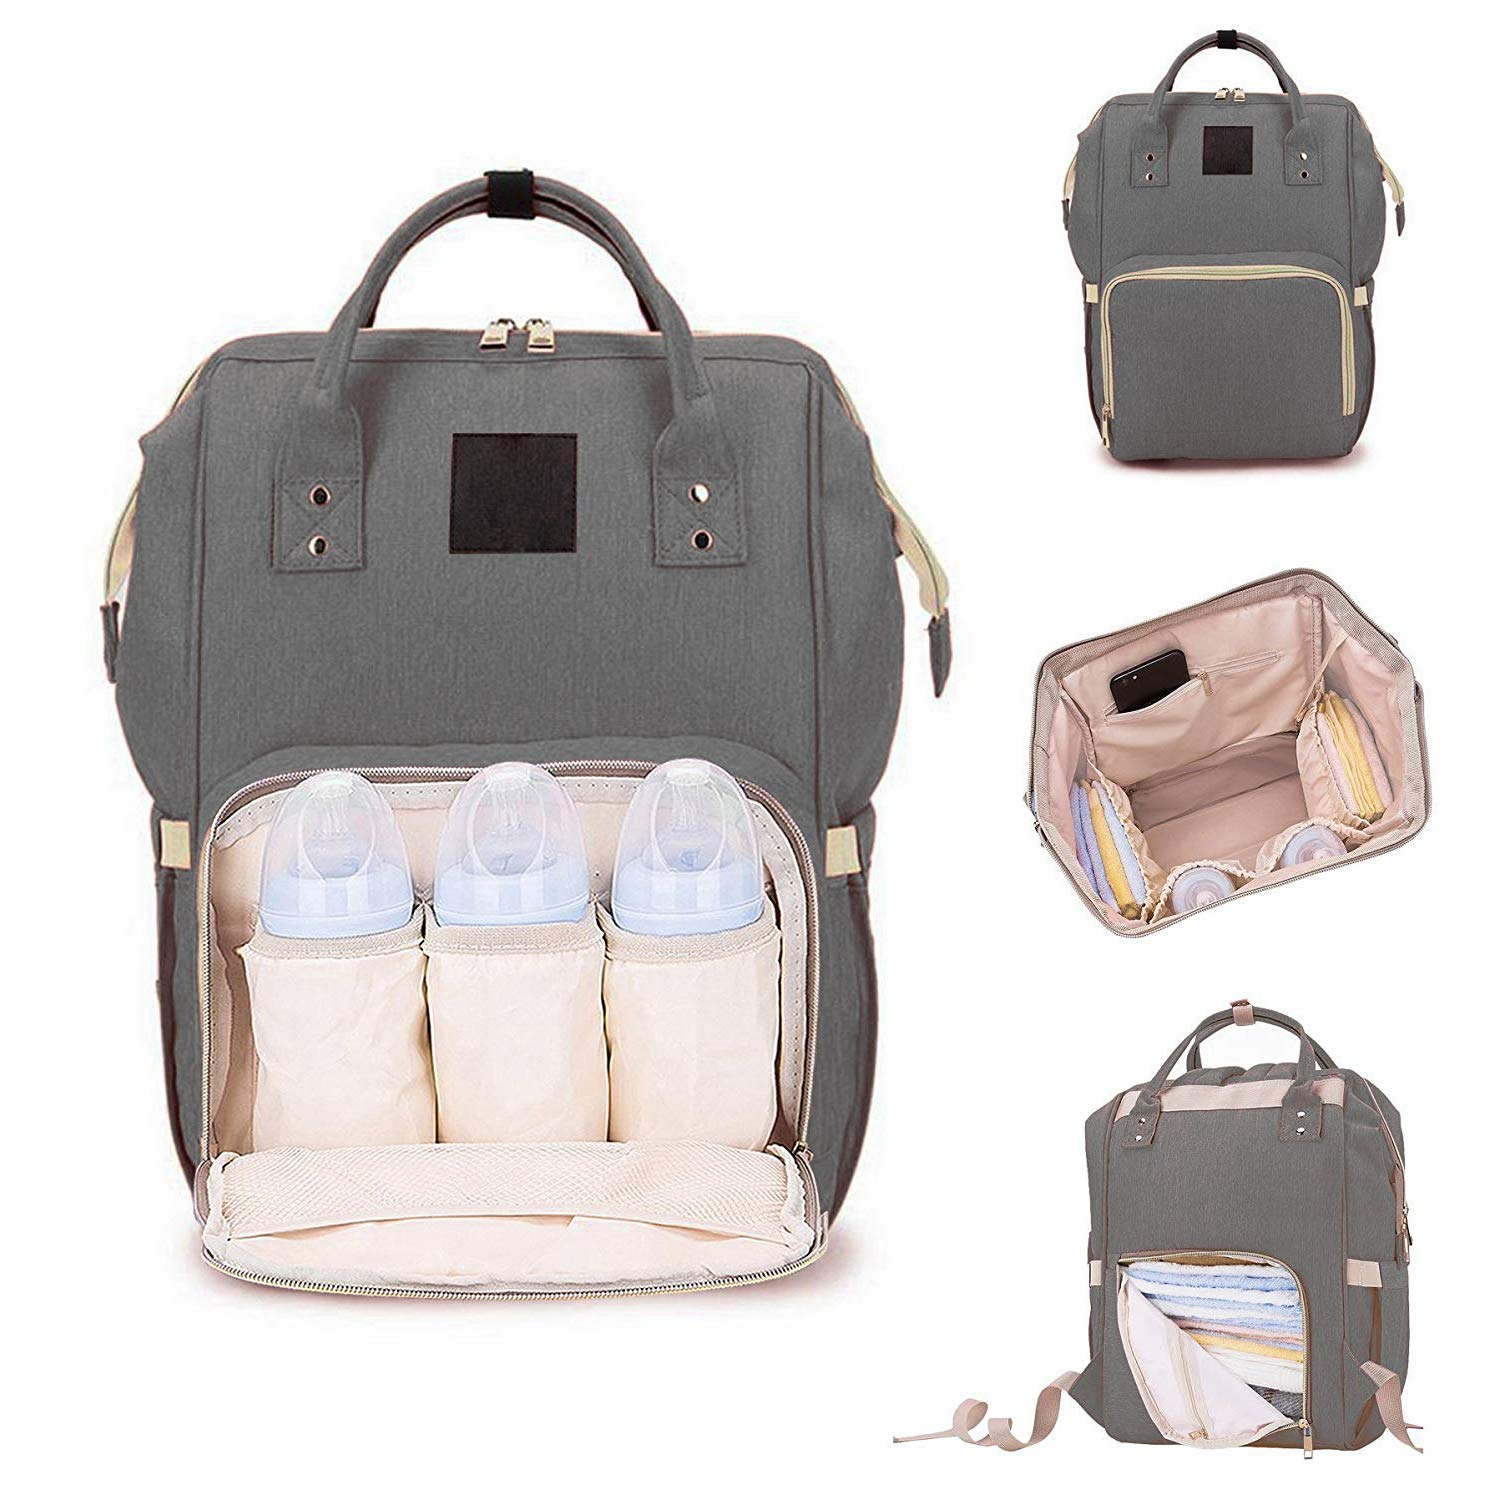 6c645594d331 House of Sensation Multi-Function Waterproof Mother Bag for Travel with  Baby - Large Capacity